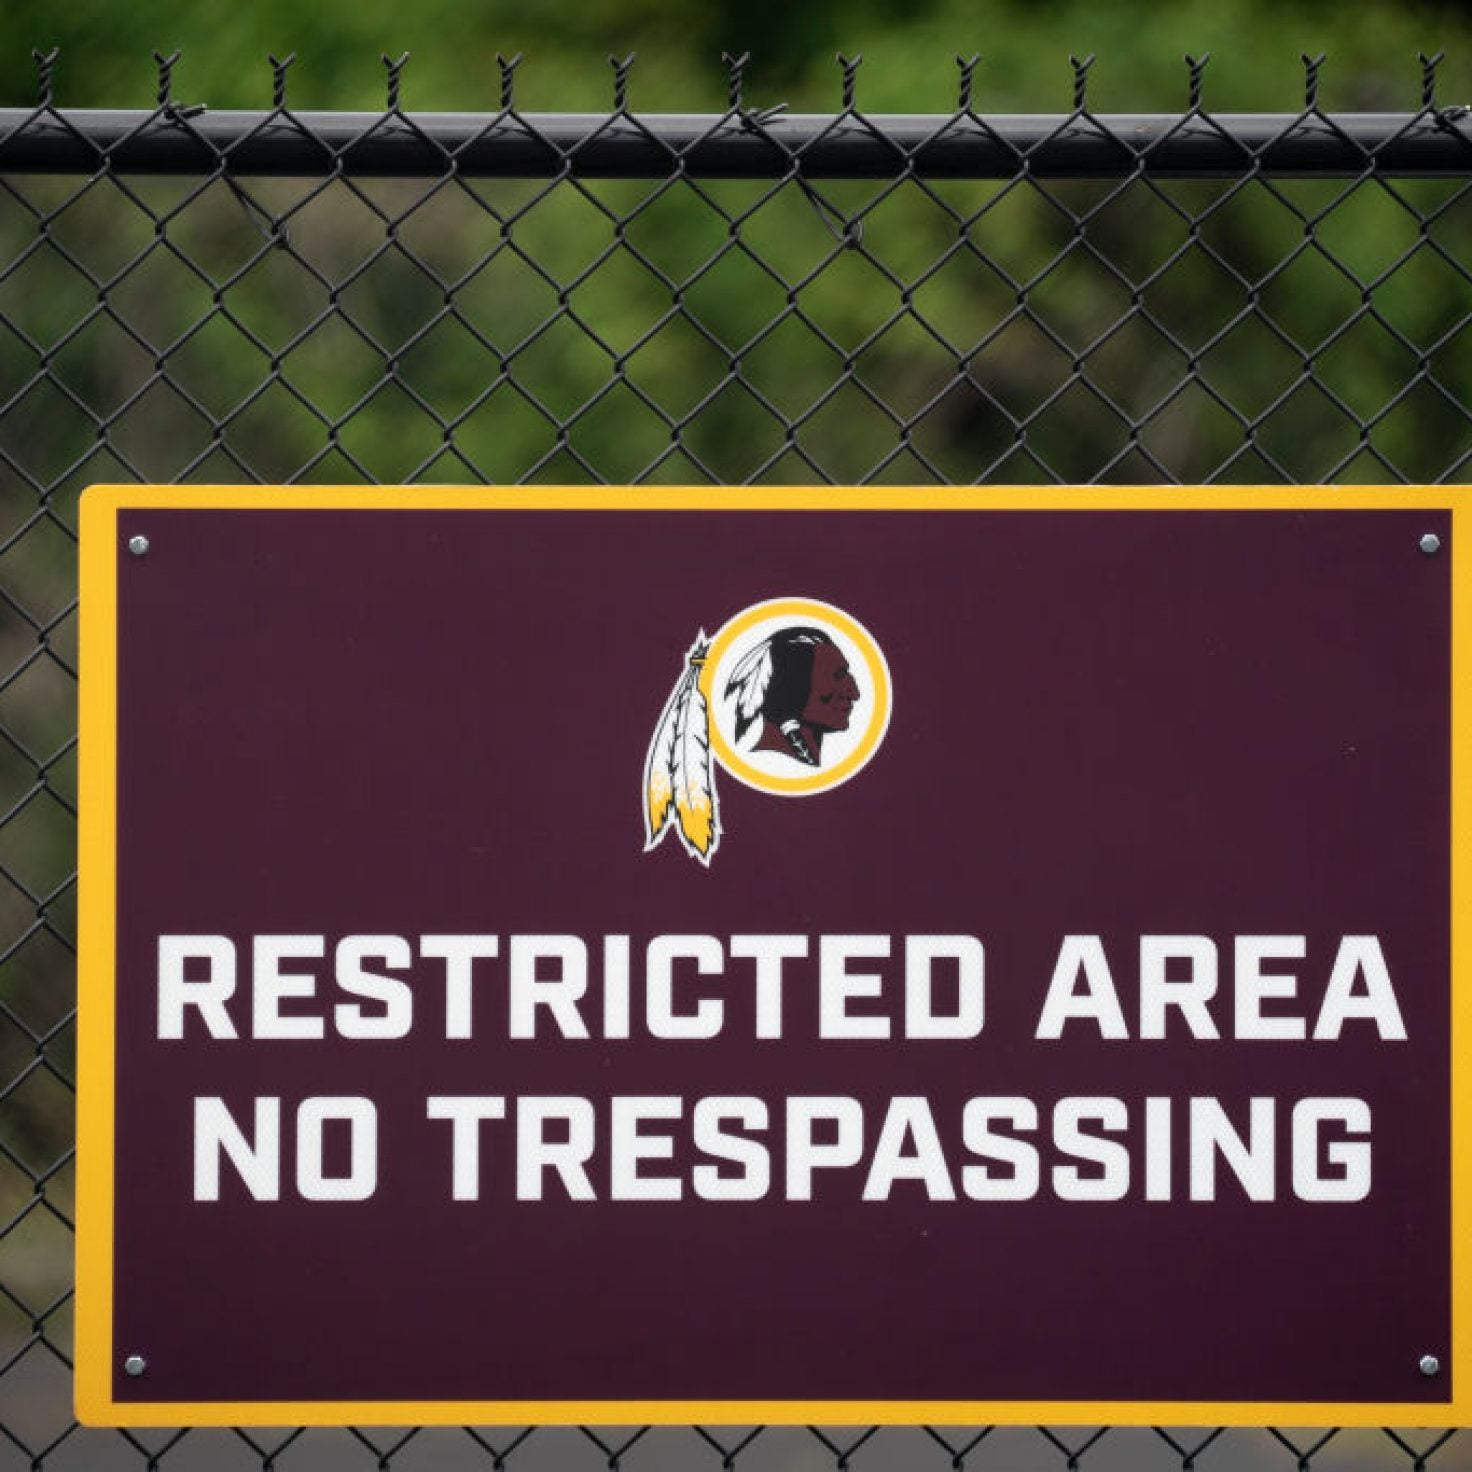 Washington Redskins To Change Name And Logo After Decades Of Backlash